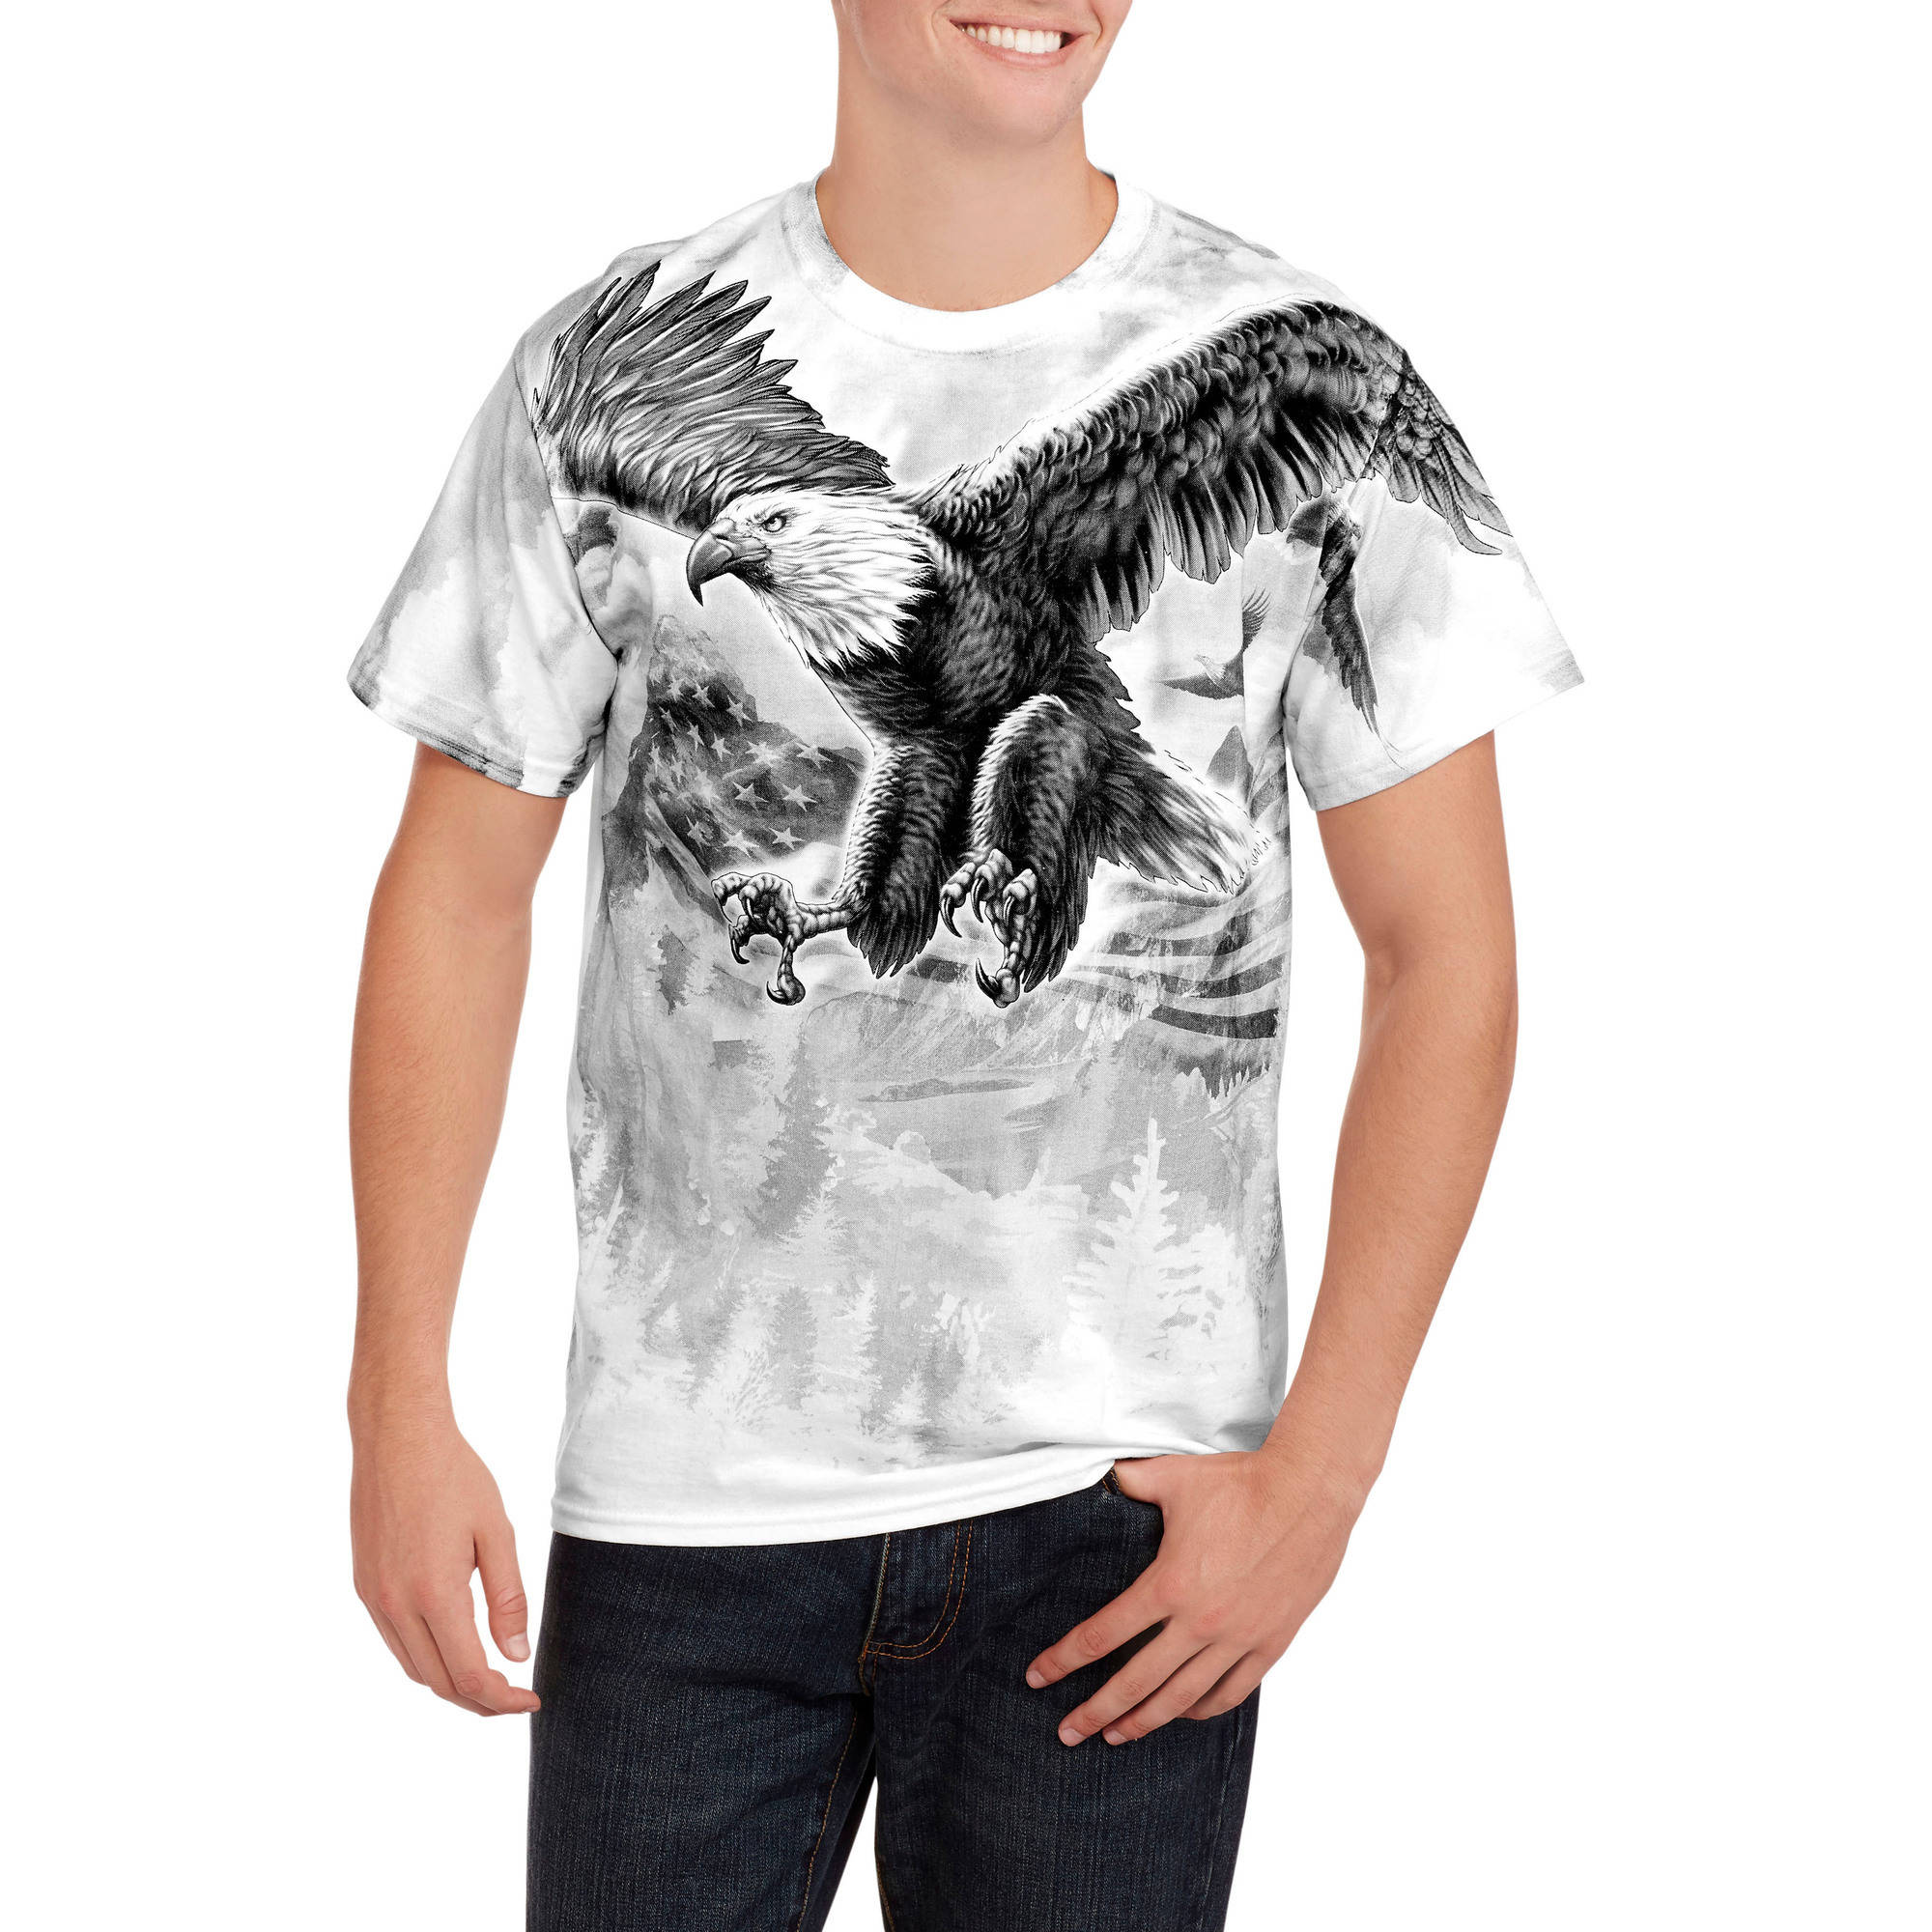 Fly Eagle Men's Graphic Tee